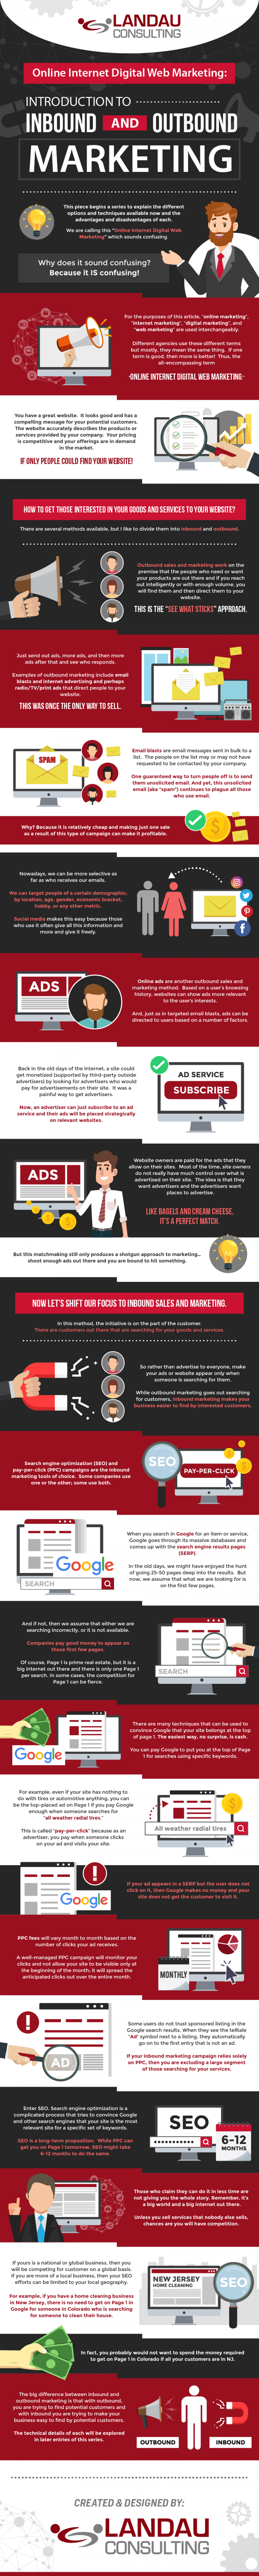 Online Internet Digital Web Marketing Introduction to Inbound and Outbound Marketing  Infographic